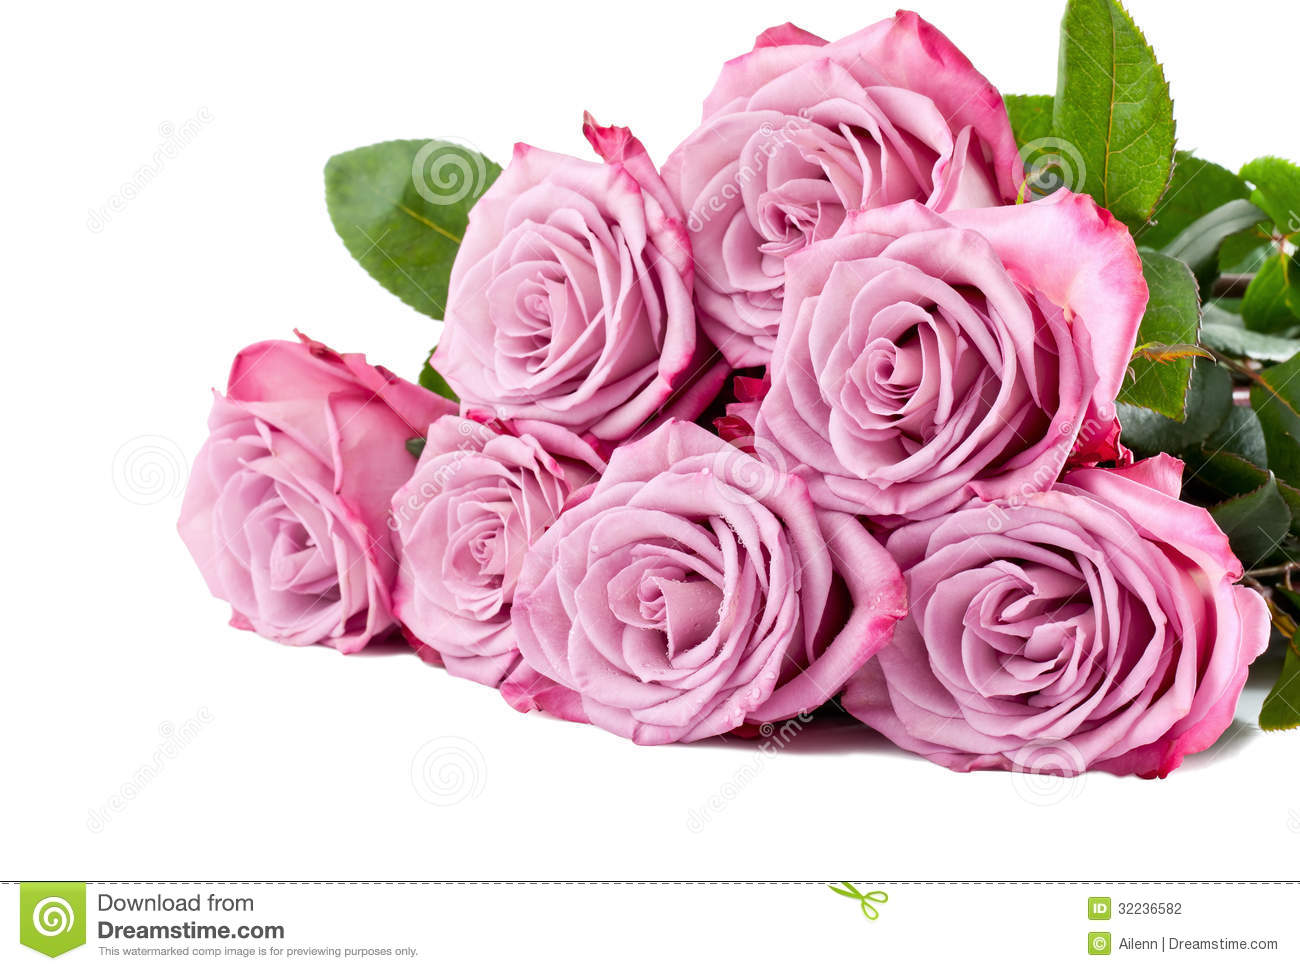 Wedding Roses Lavender Background Stock Photos, Images, & Pictures ...